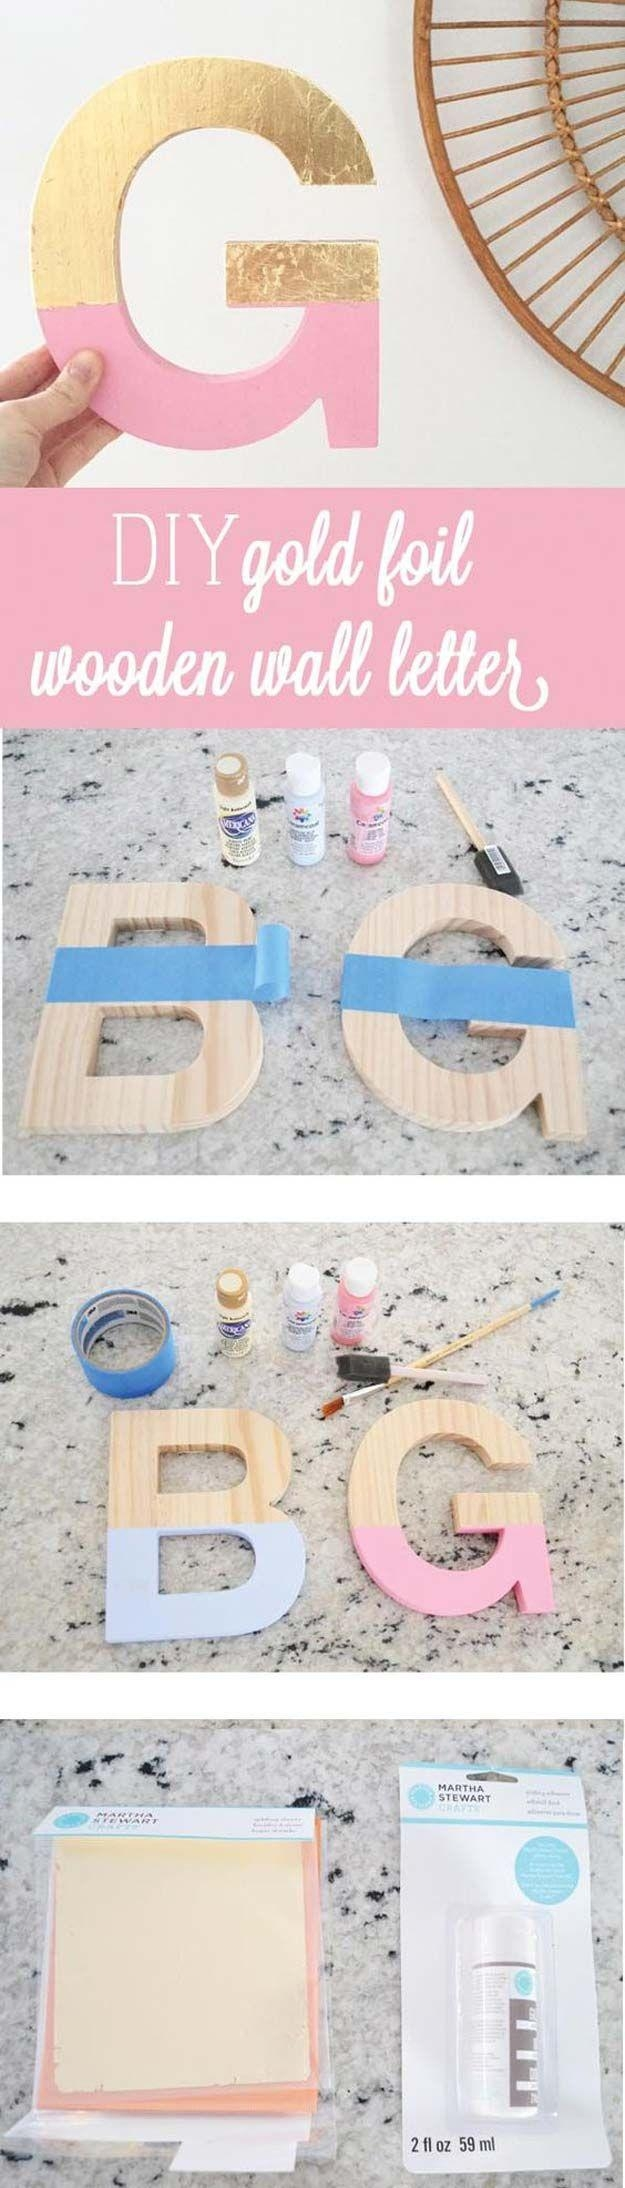 Get 20+ Decorative Wall Letters Ideas On Pinterest Without Signing Intended For Decorative Initials Wall Art (Image 7 of 20)